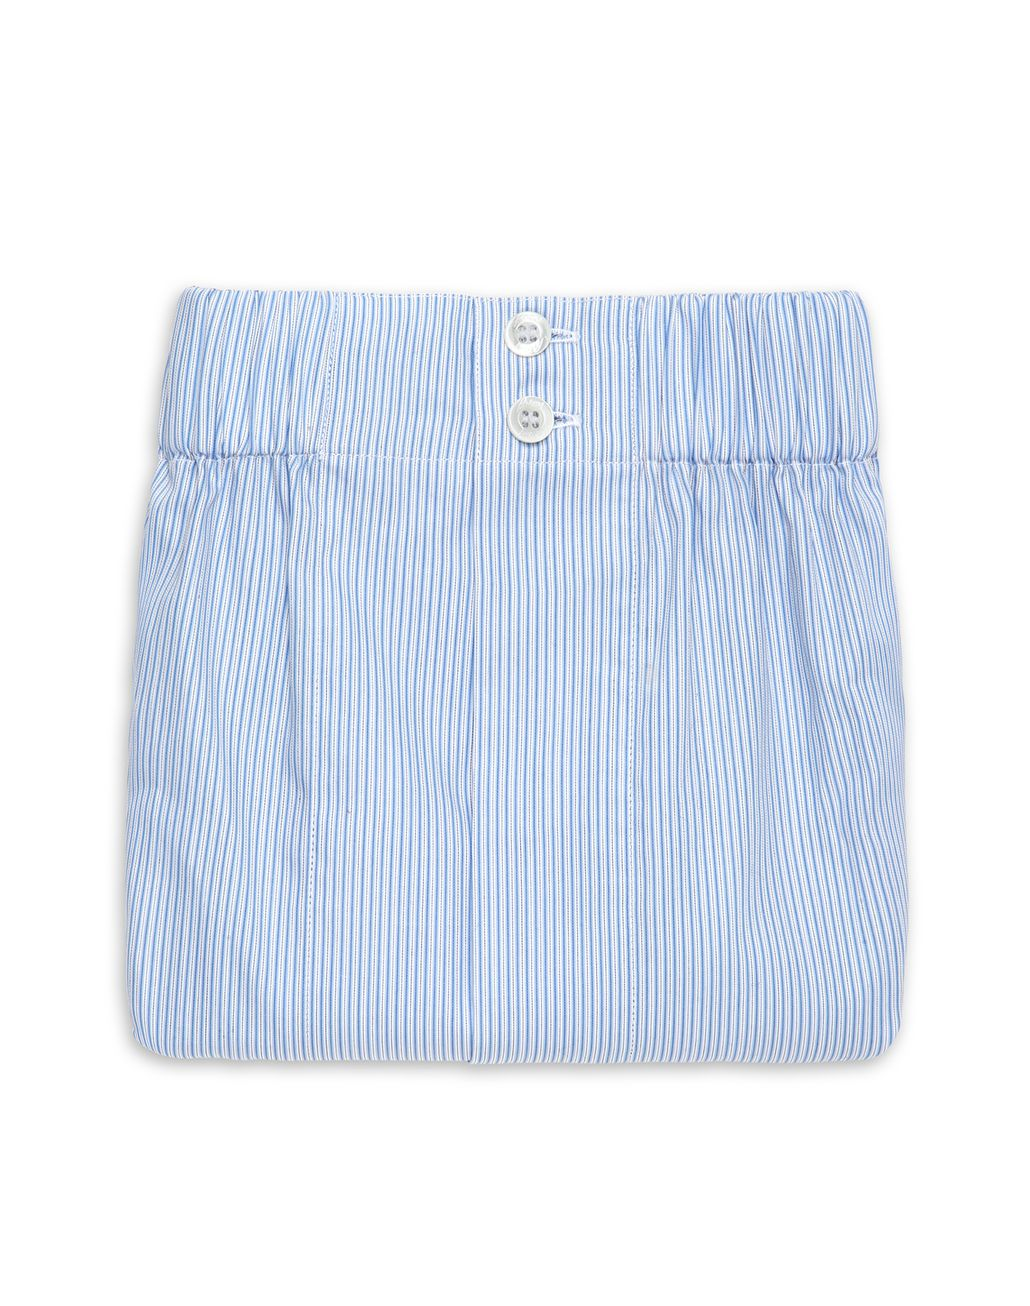 BRIONI Bluette and White Pinstriped Underwear Underwear Man r